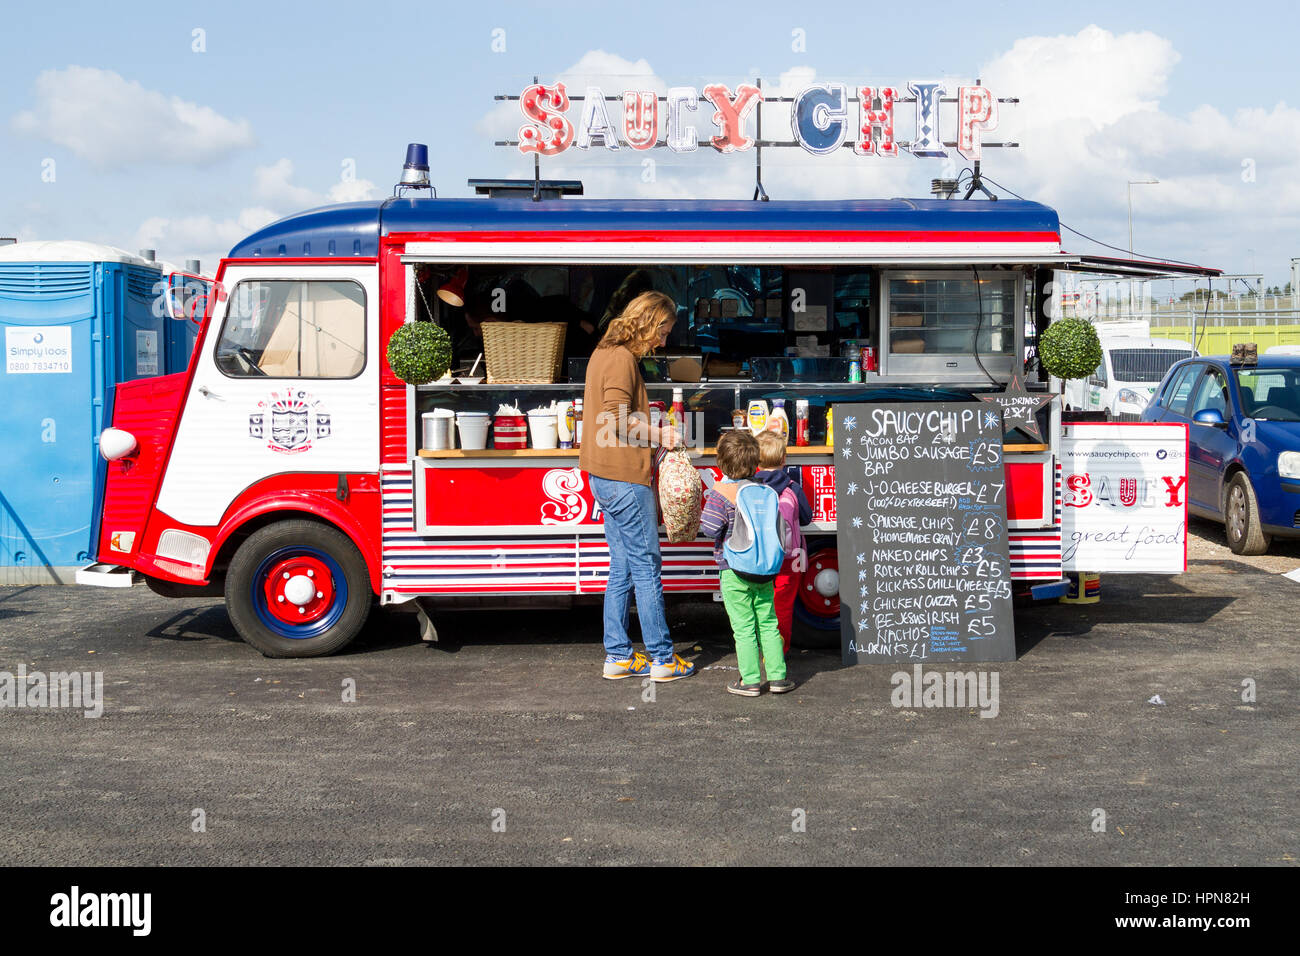 A colourful street food vendor van the Saucy chip at the classic car ...